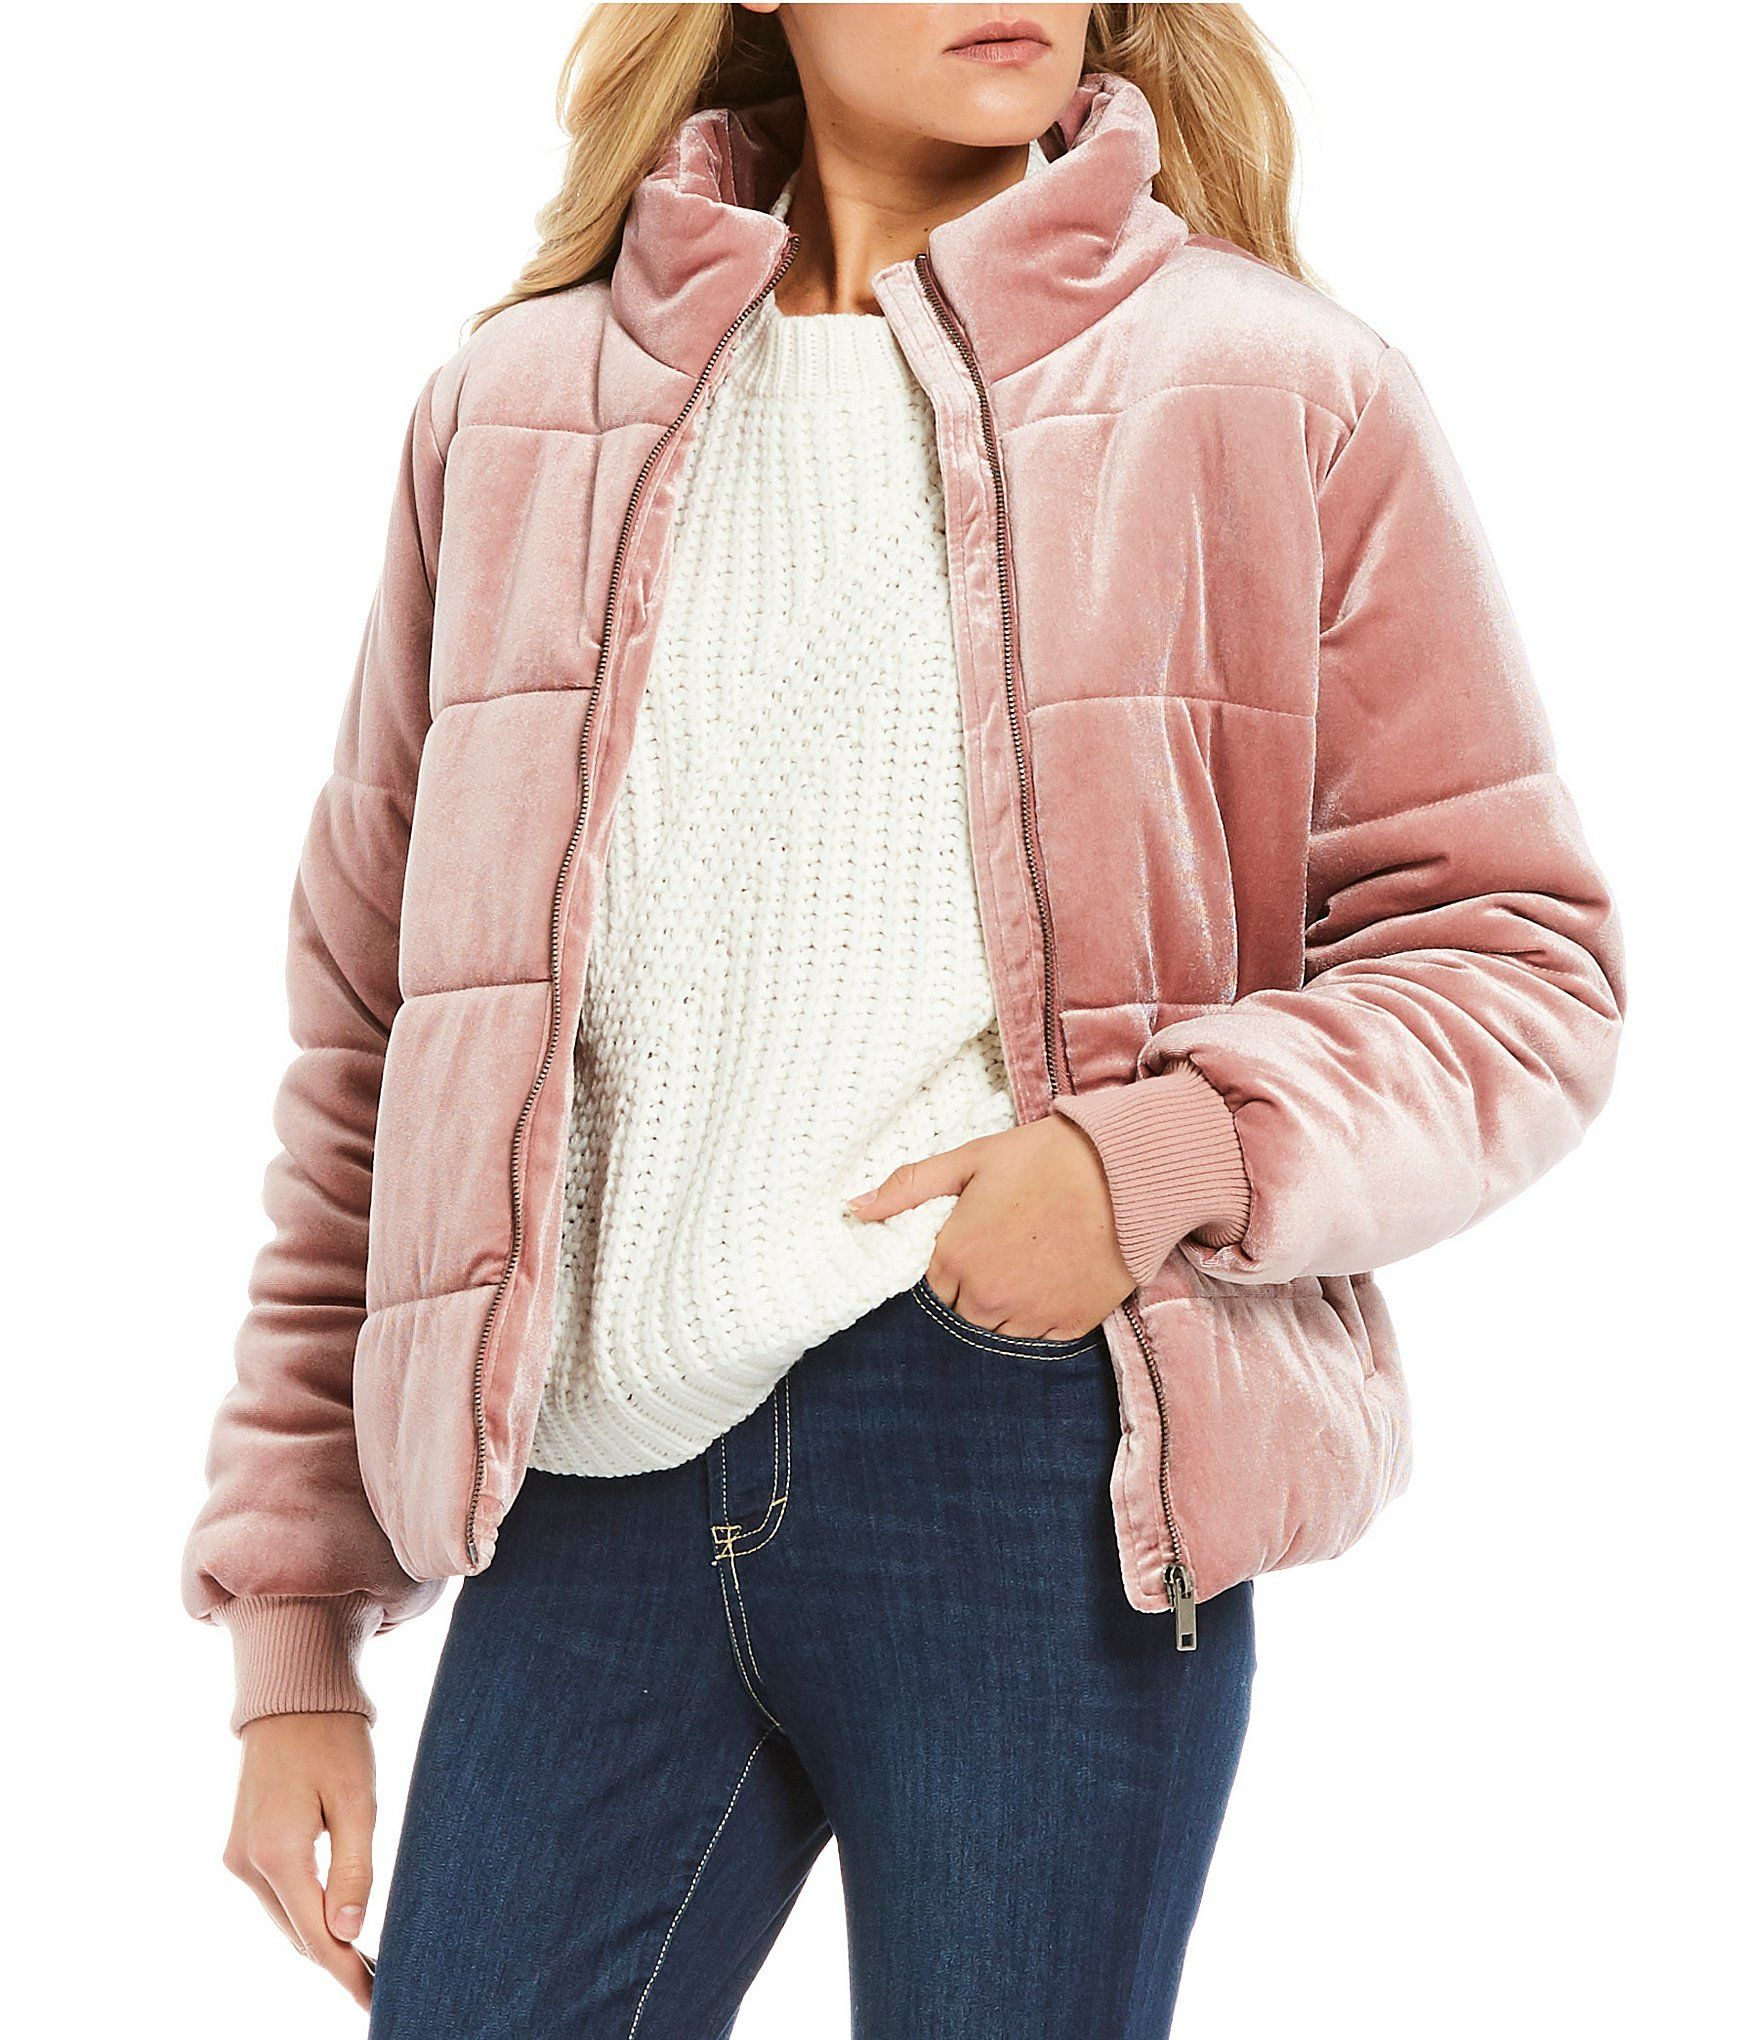 Pin By Samantha Cernosek On Personal Style Quilted Puffer Jacket Jackets Puffer Jackets [ 2040 x 1760 Pixel ]